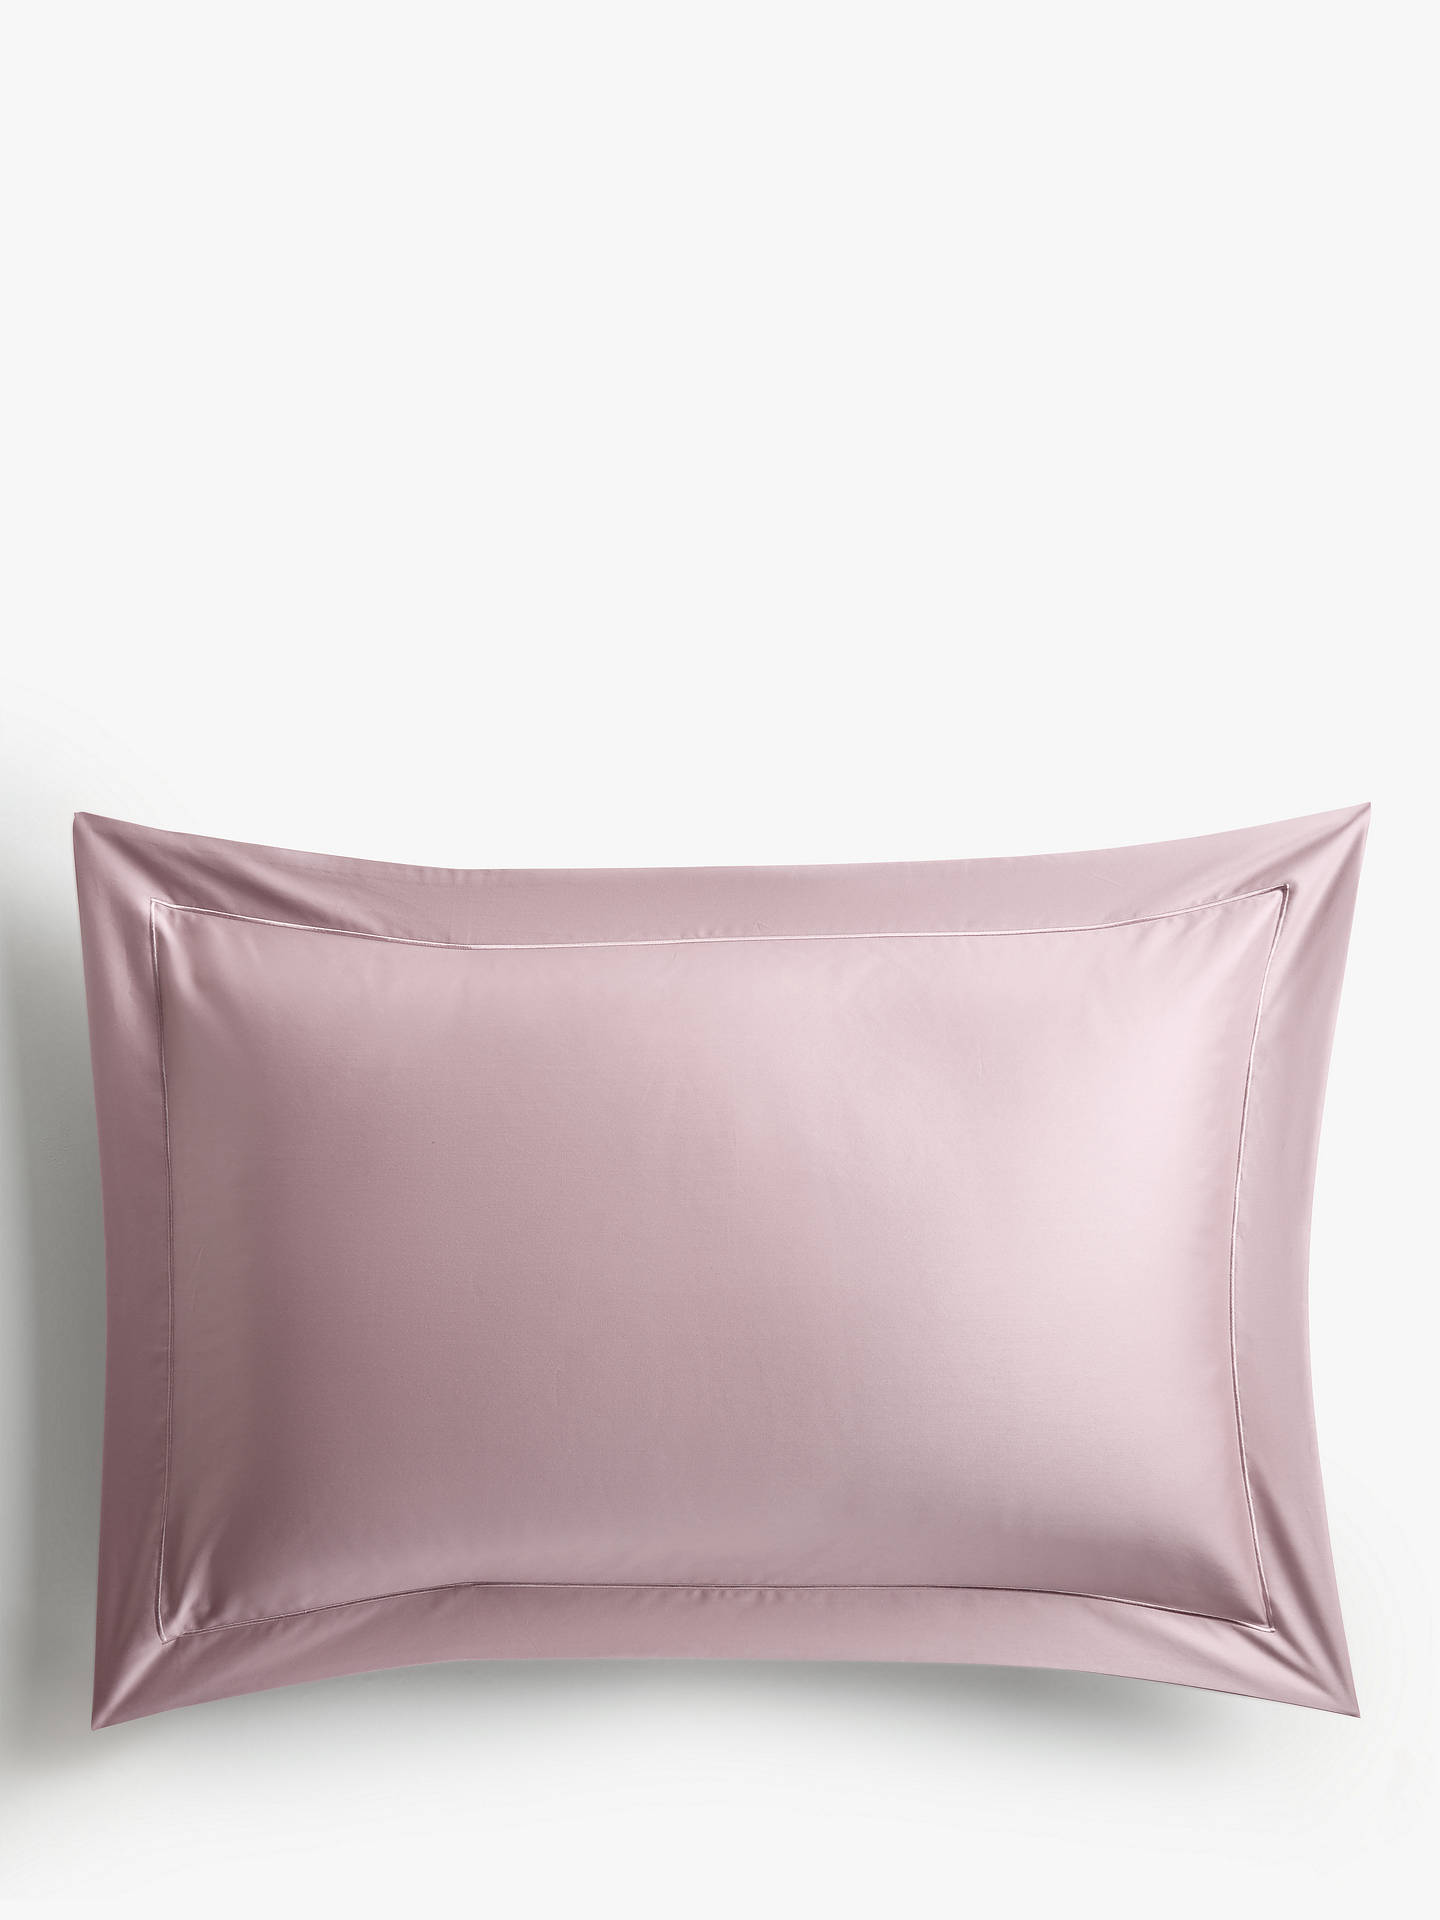 Buy John Lewis & Partners 400 Thread Count Soft & Silky Egyptian Cotton Standard Pillowcase, Mauve Online at johnlewis.com